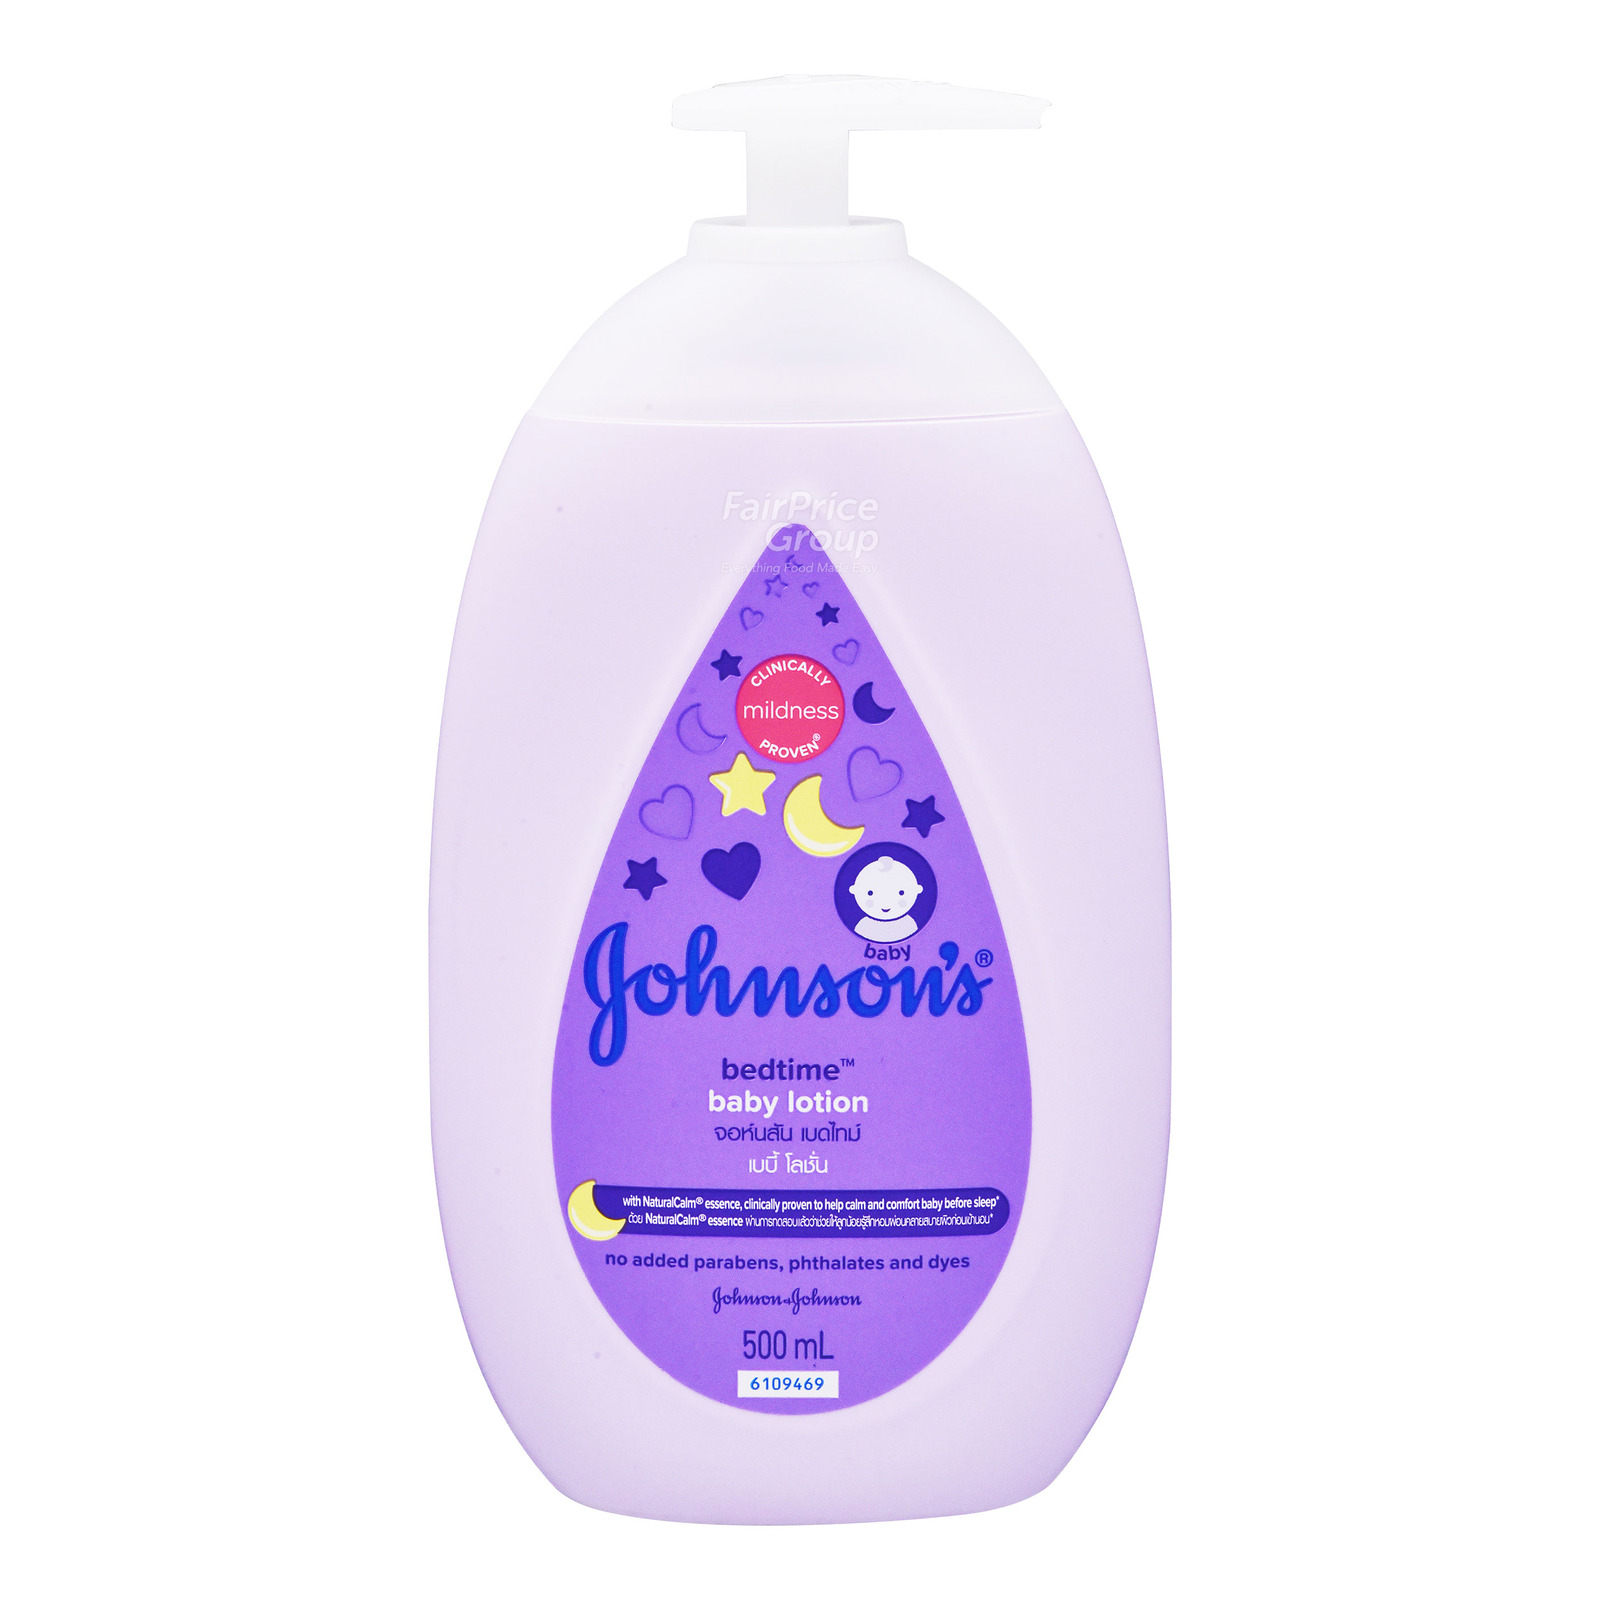 Johnson's Baby Lotion - Bedtime